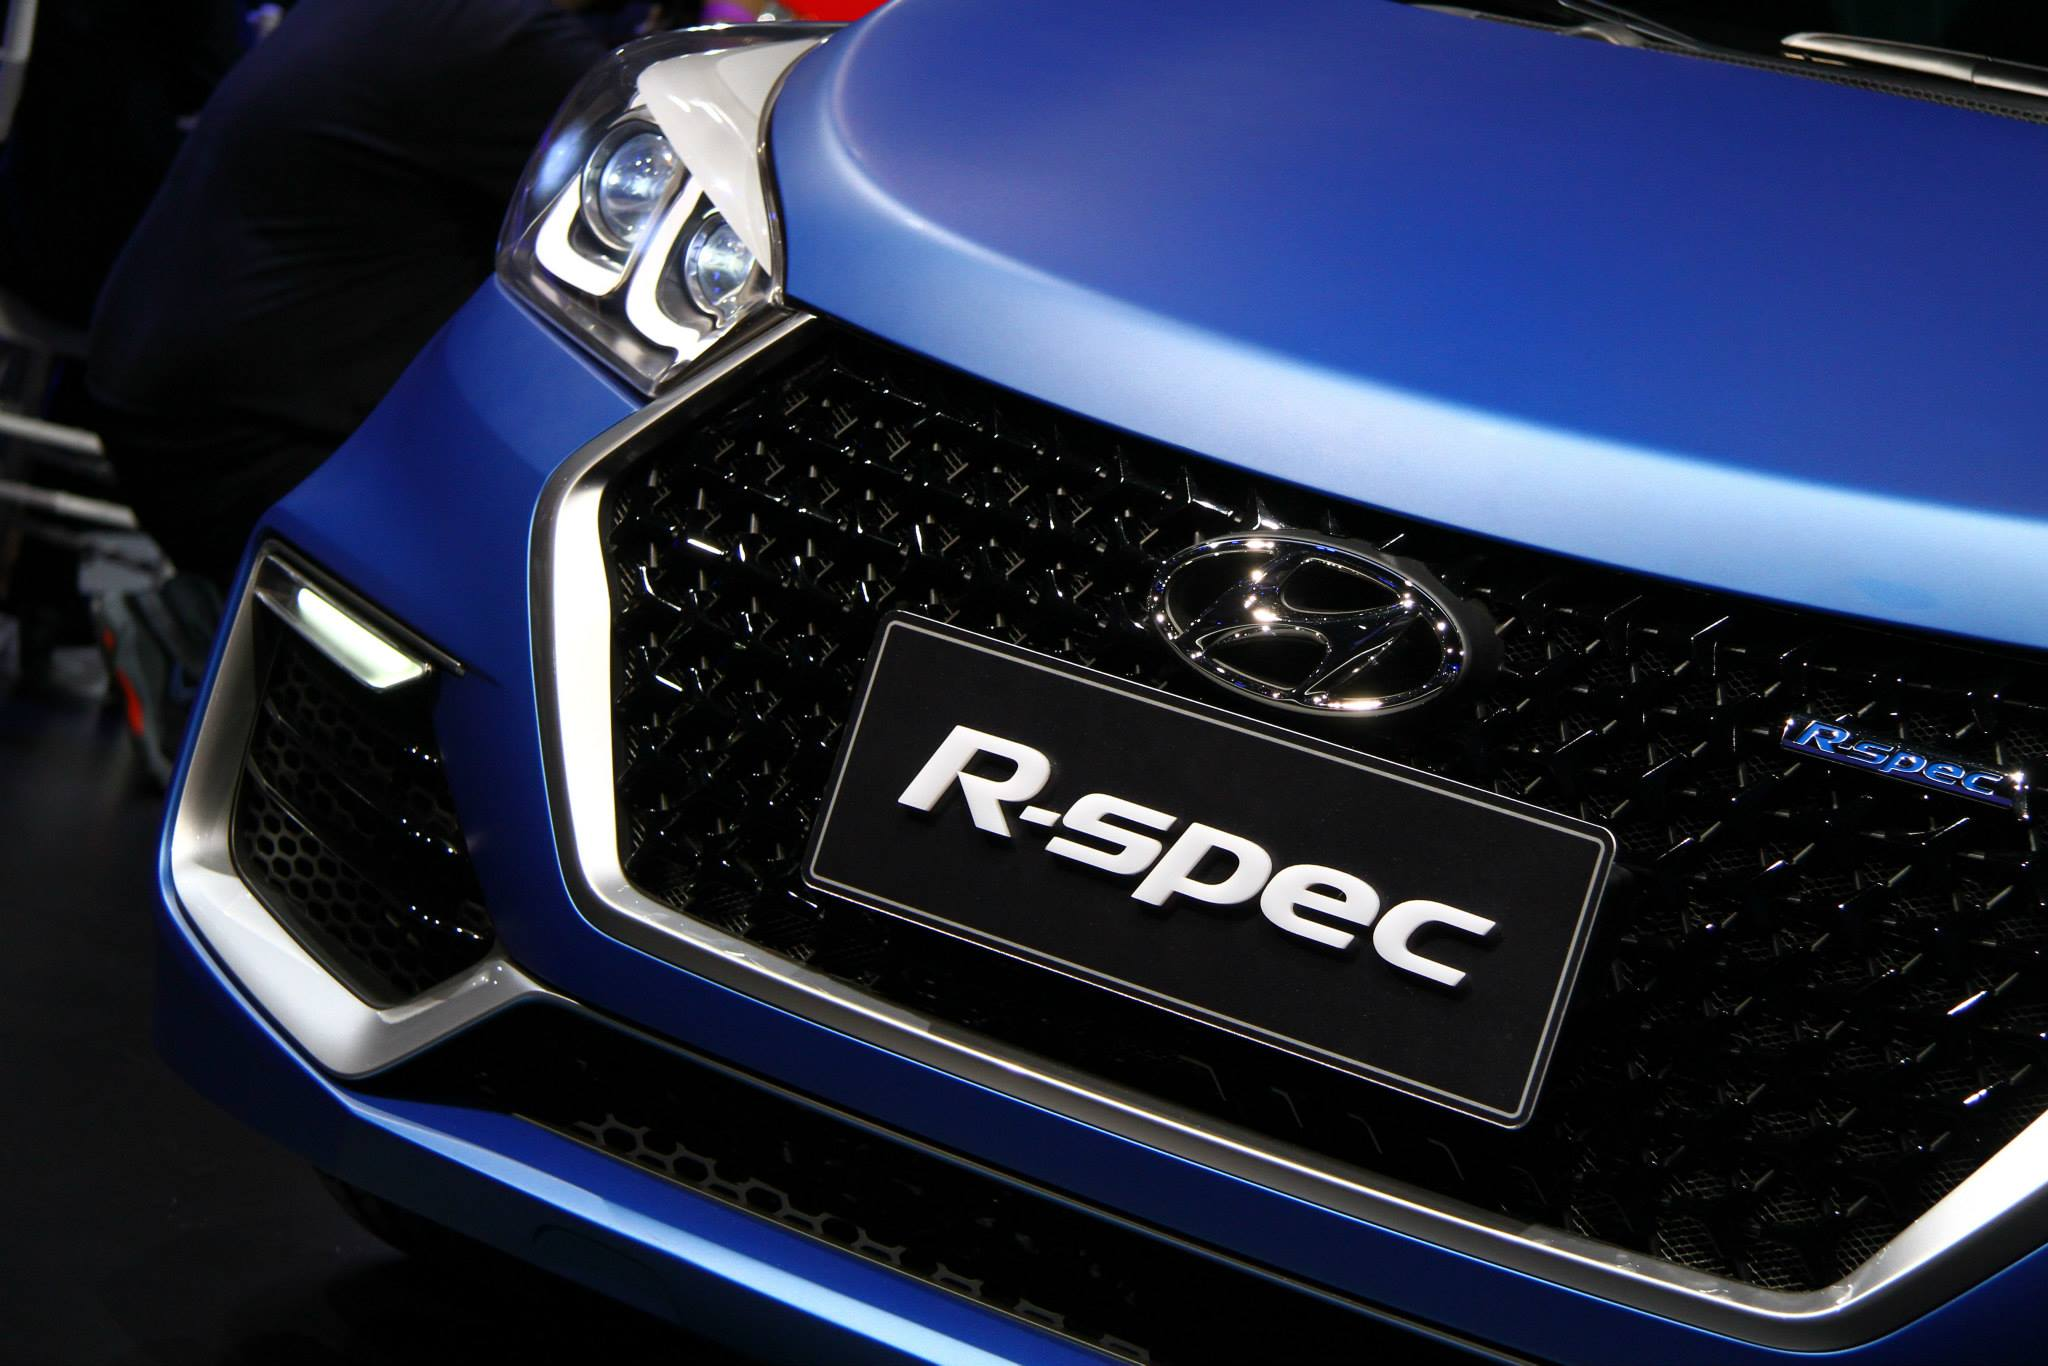 Hyundai hb20 r spec is a scorching hot hatch from brazil